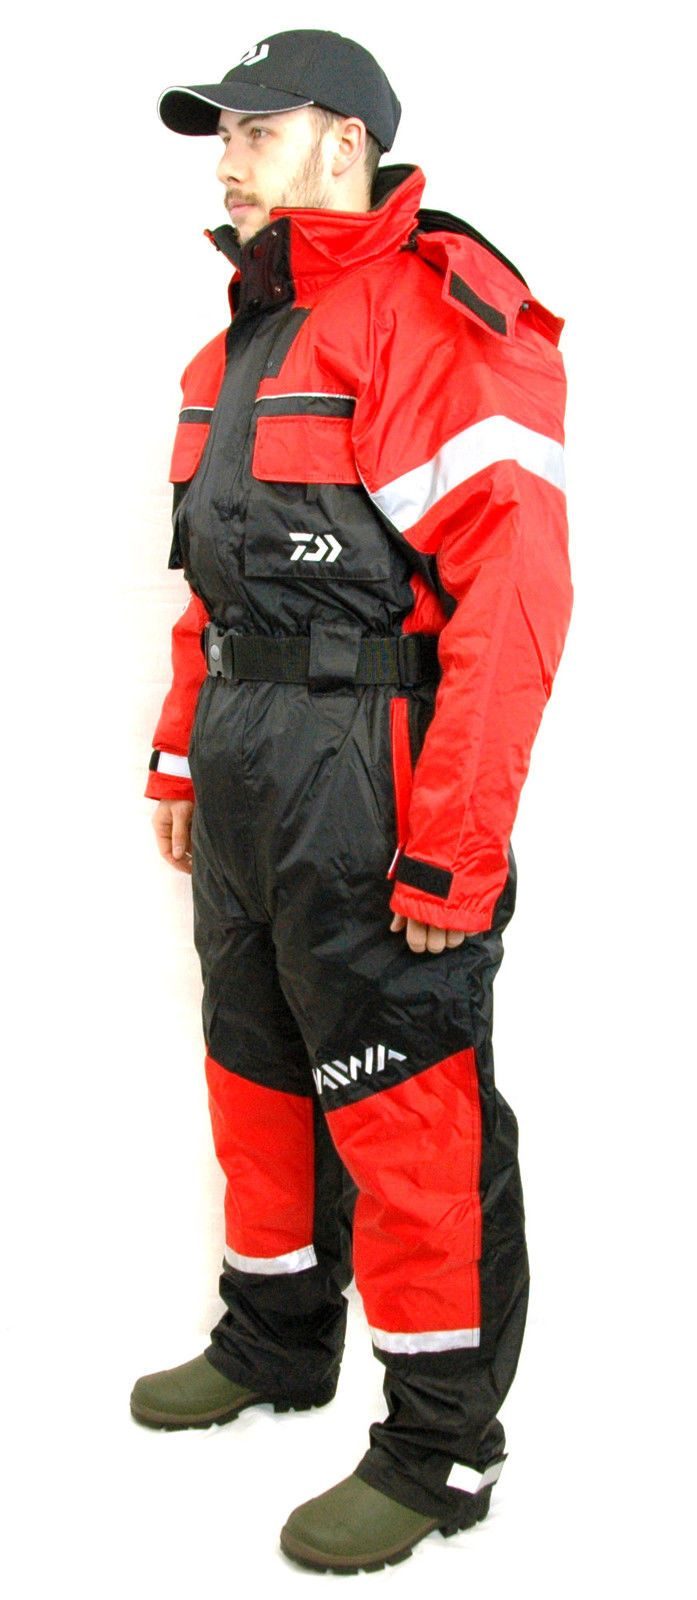 66d7b344f9e148 Details about SPECIAL OFFER NEW DAIWA SUNDRIDGE ONE PIECE FLOTATION SUIT  ALL SIZES AVAILABLE |